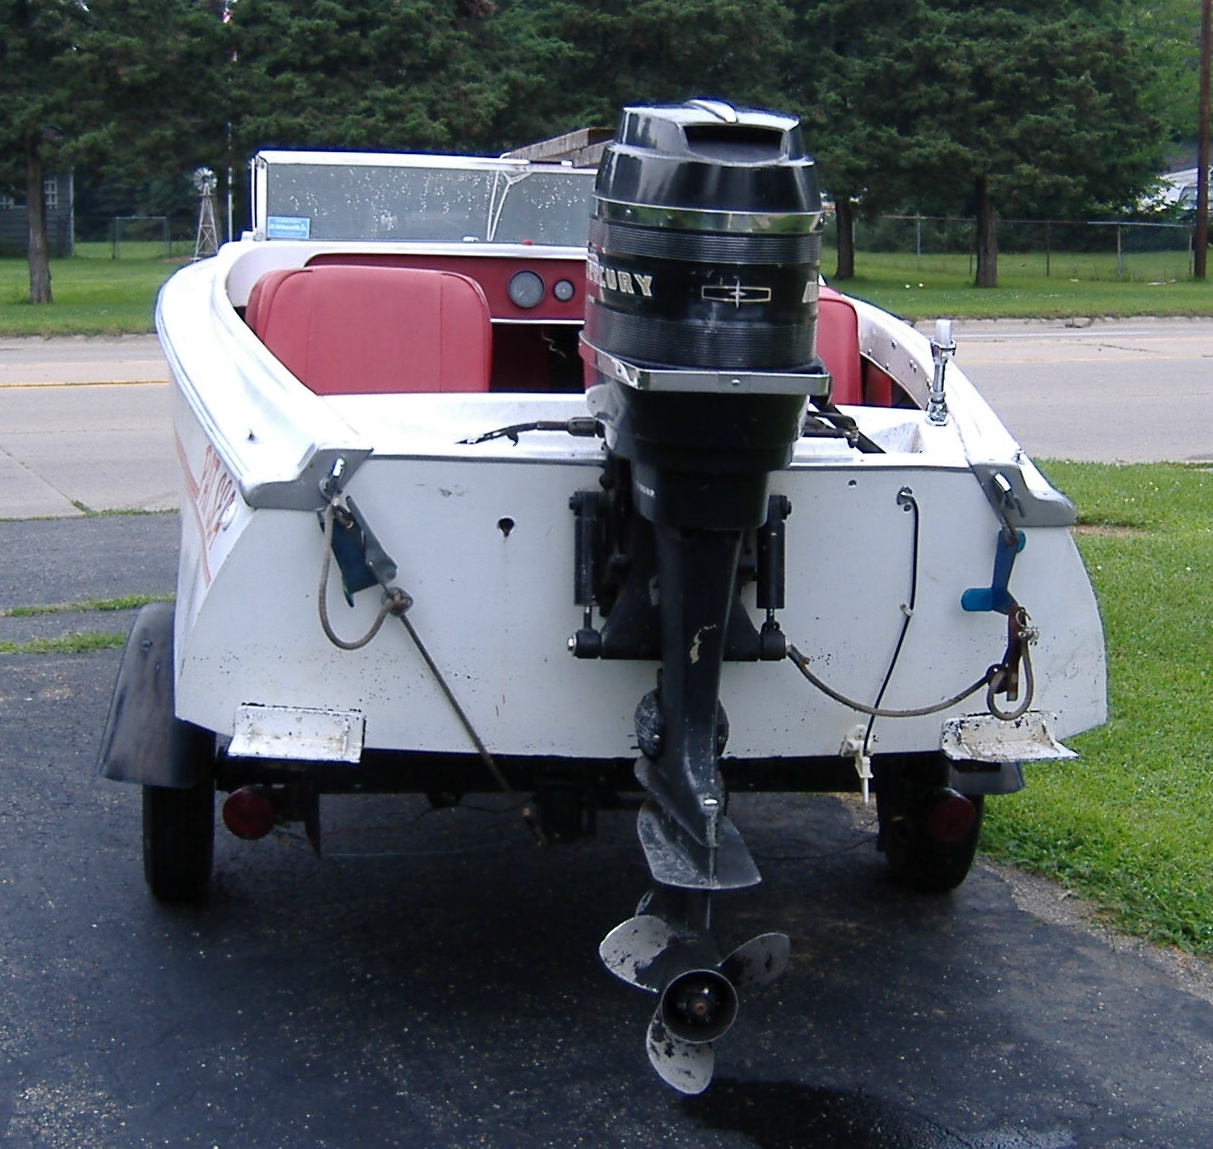 """1965 Sabre-Craft Fury 15 Ft. 1965 65 HP Mercury outboard, long shaft (new  coil, new starter) 1991 """"Assembled"""" Trailer"""